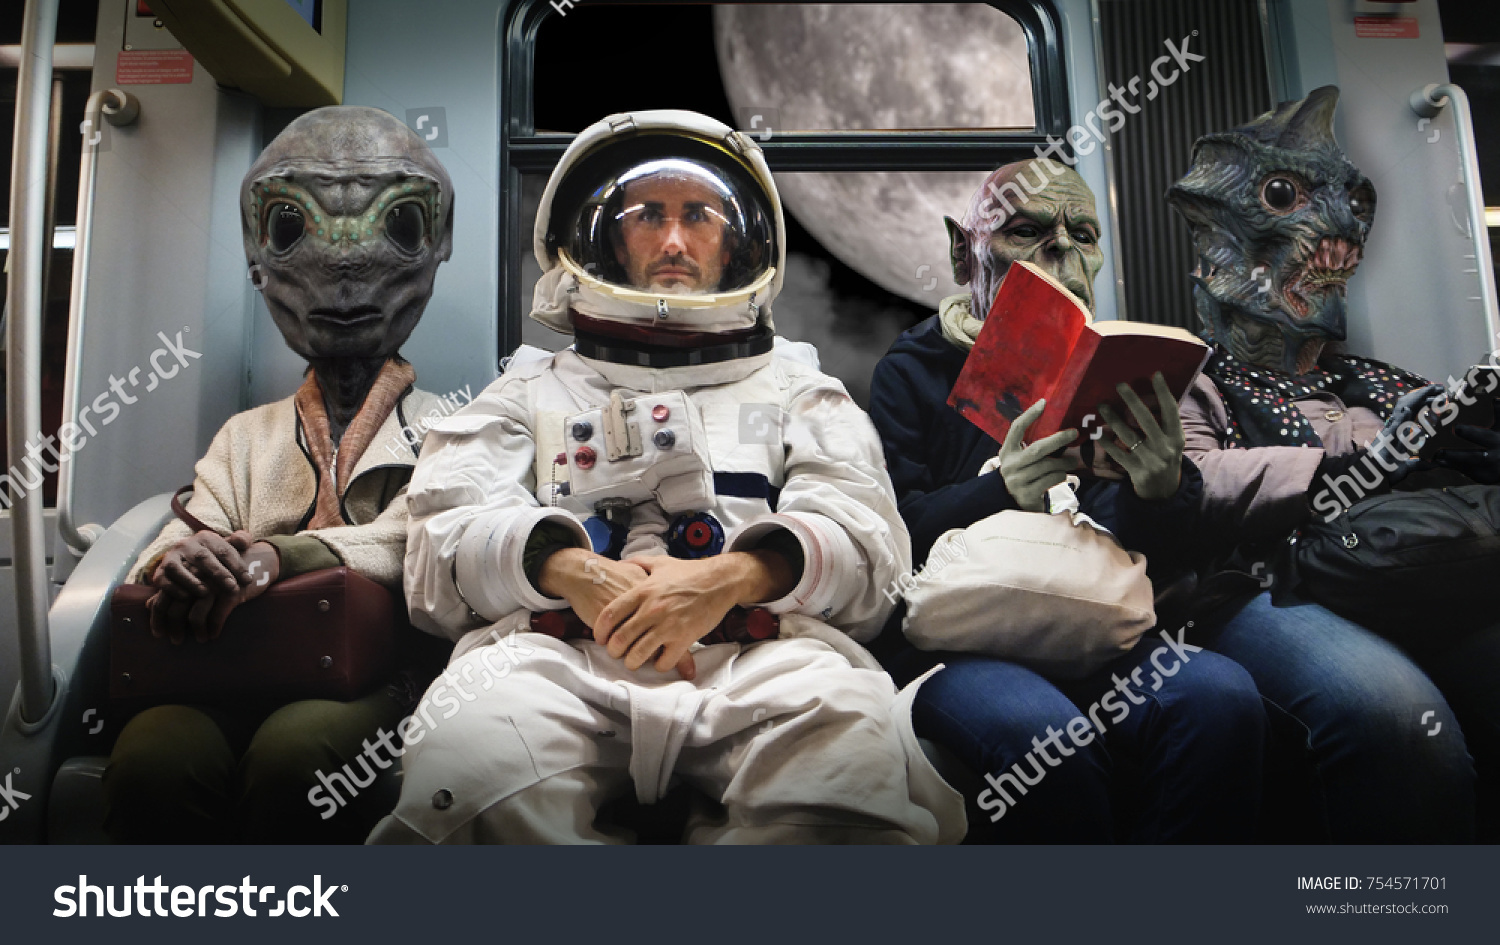 On a spaceship, an astronaut, sitting alongside extraterrestrial monsters, travel in total relaxation reading a book. Concept of space transport, surrealism, future, new worlds. #754571701